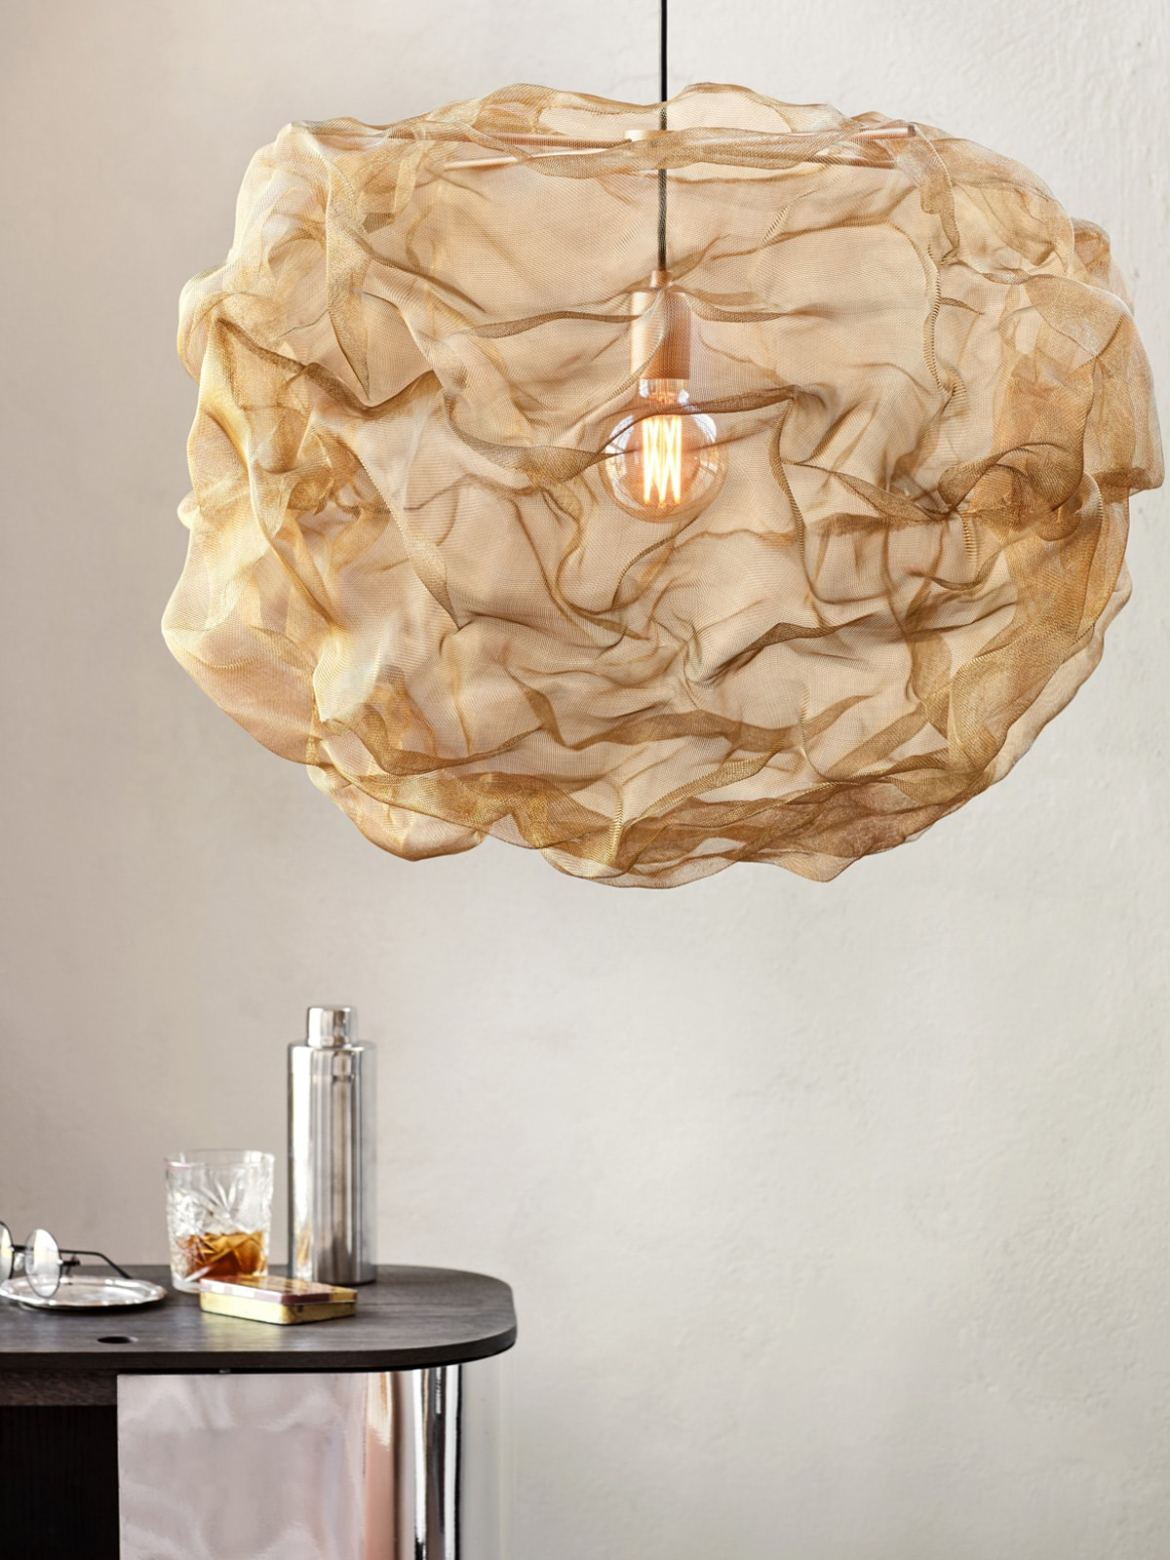 DesignOrt Blog: Messingleuchten Northern Lighting Heat Pendelleuchte